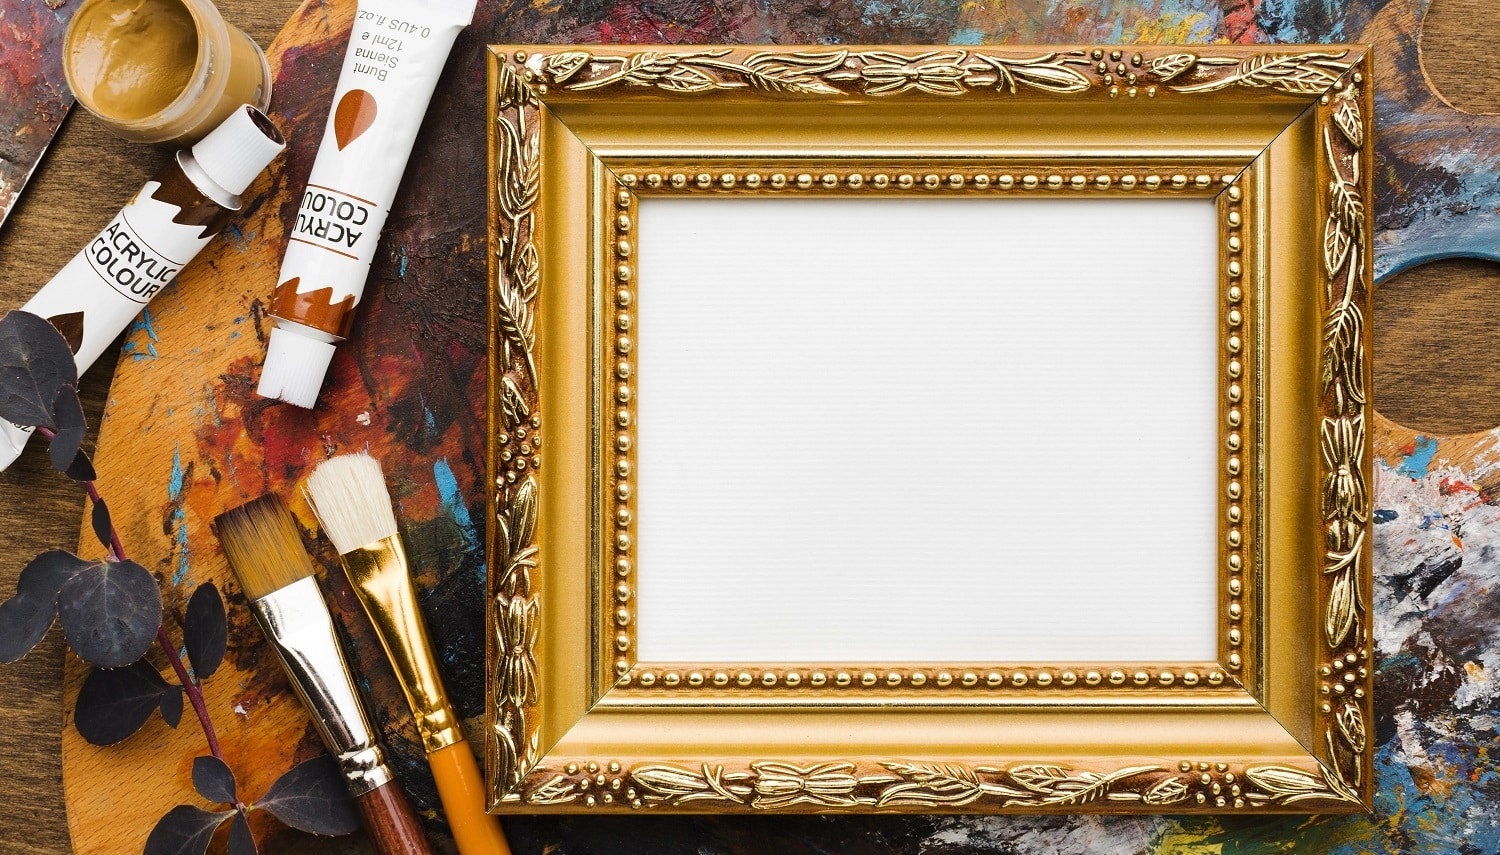 The Best Online Sources for Framing Art 002